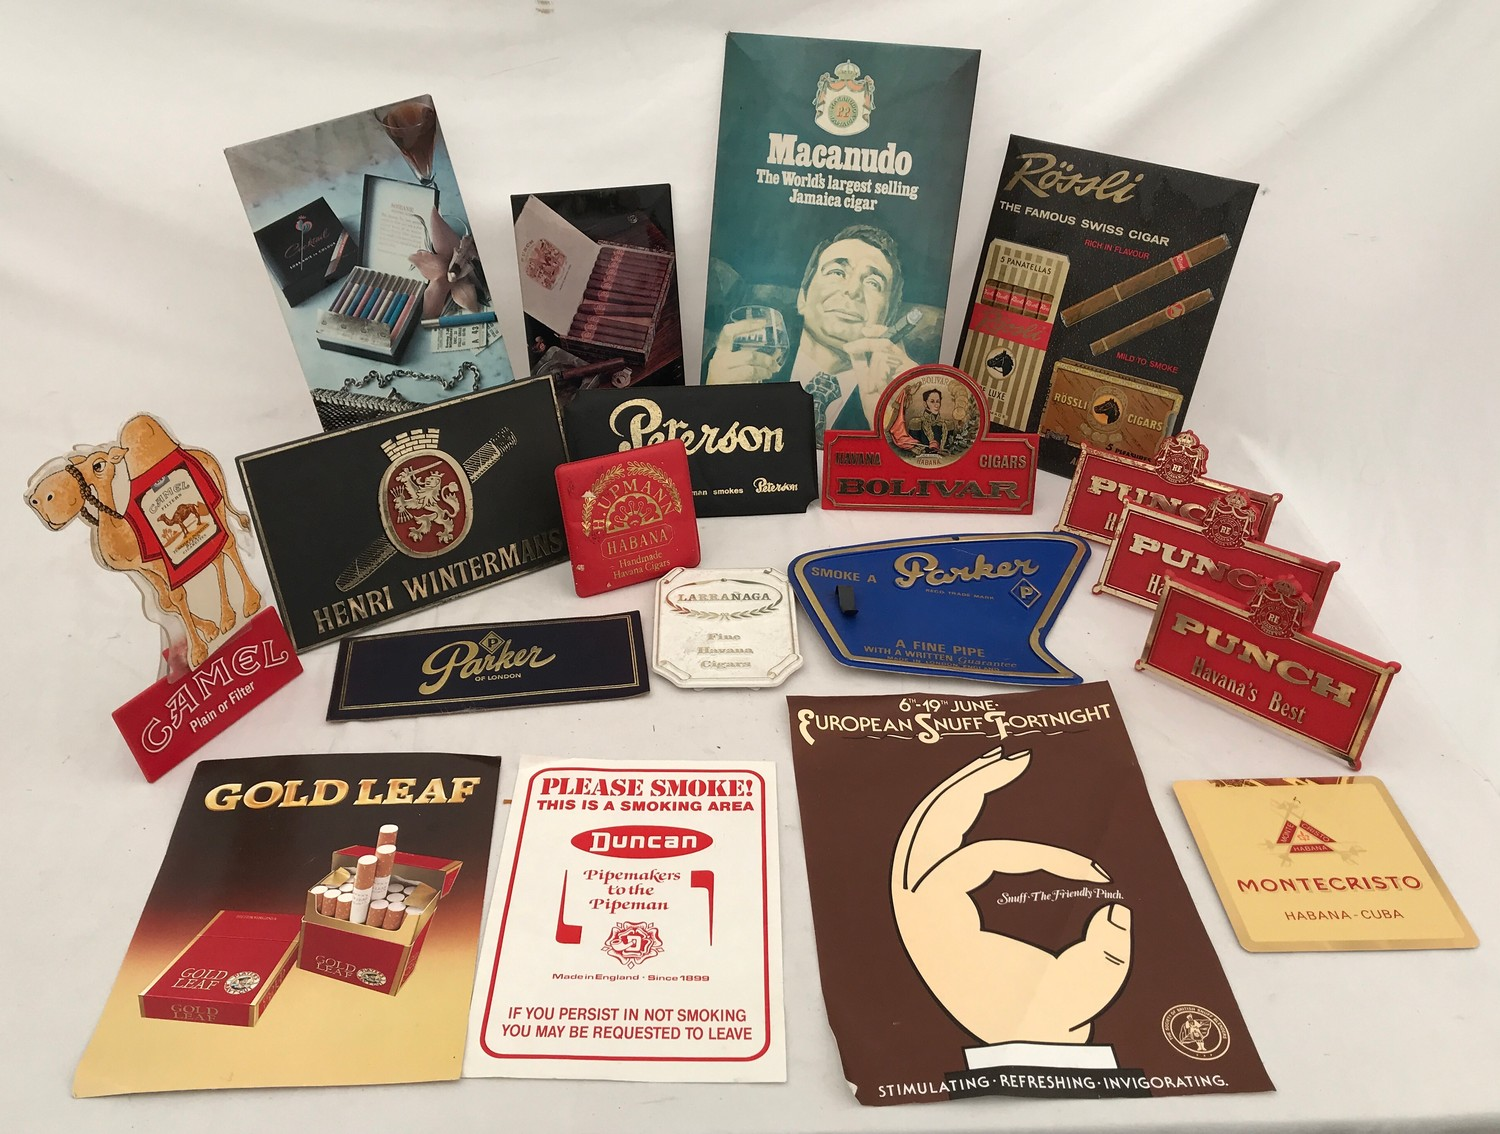 Tobacco shop metal and plastic cigar, cigarette and snuff advertising, Sobranie, Punch, Macanudo,